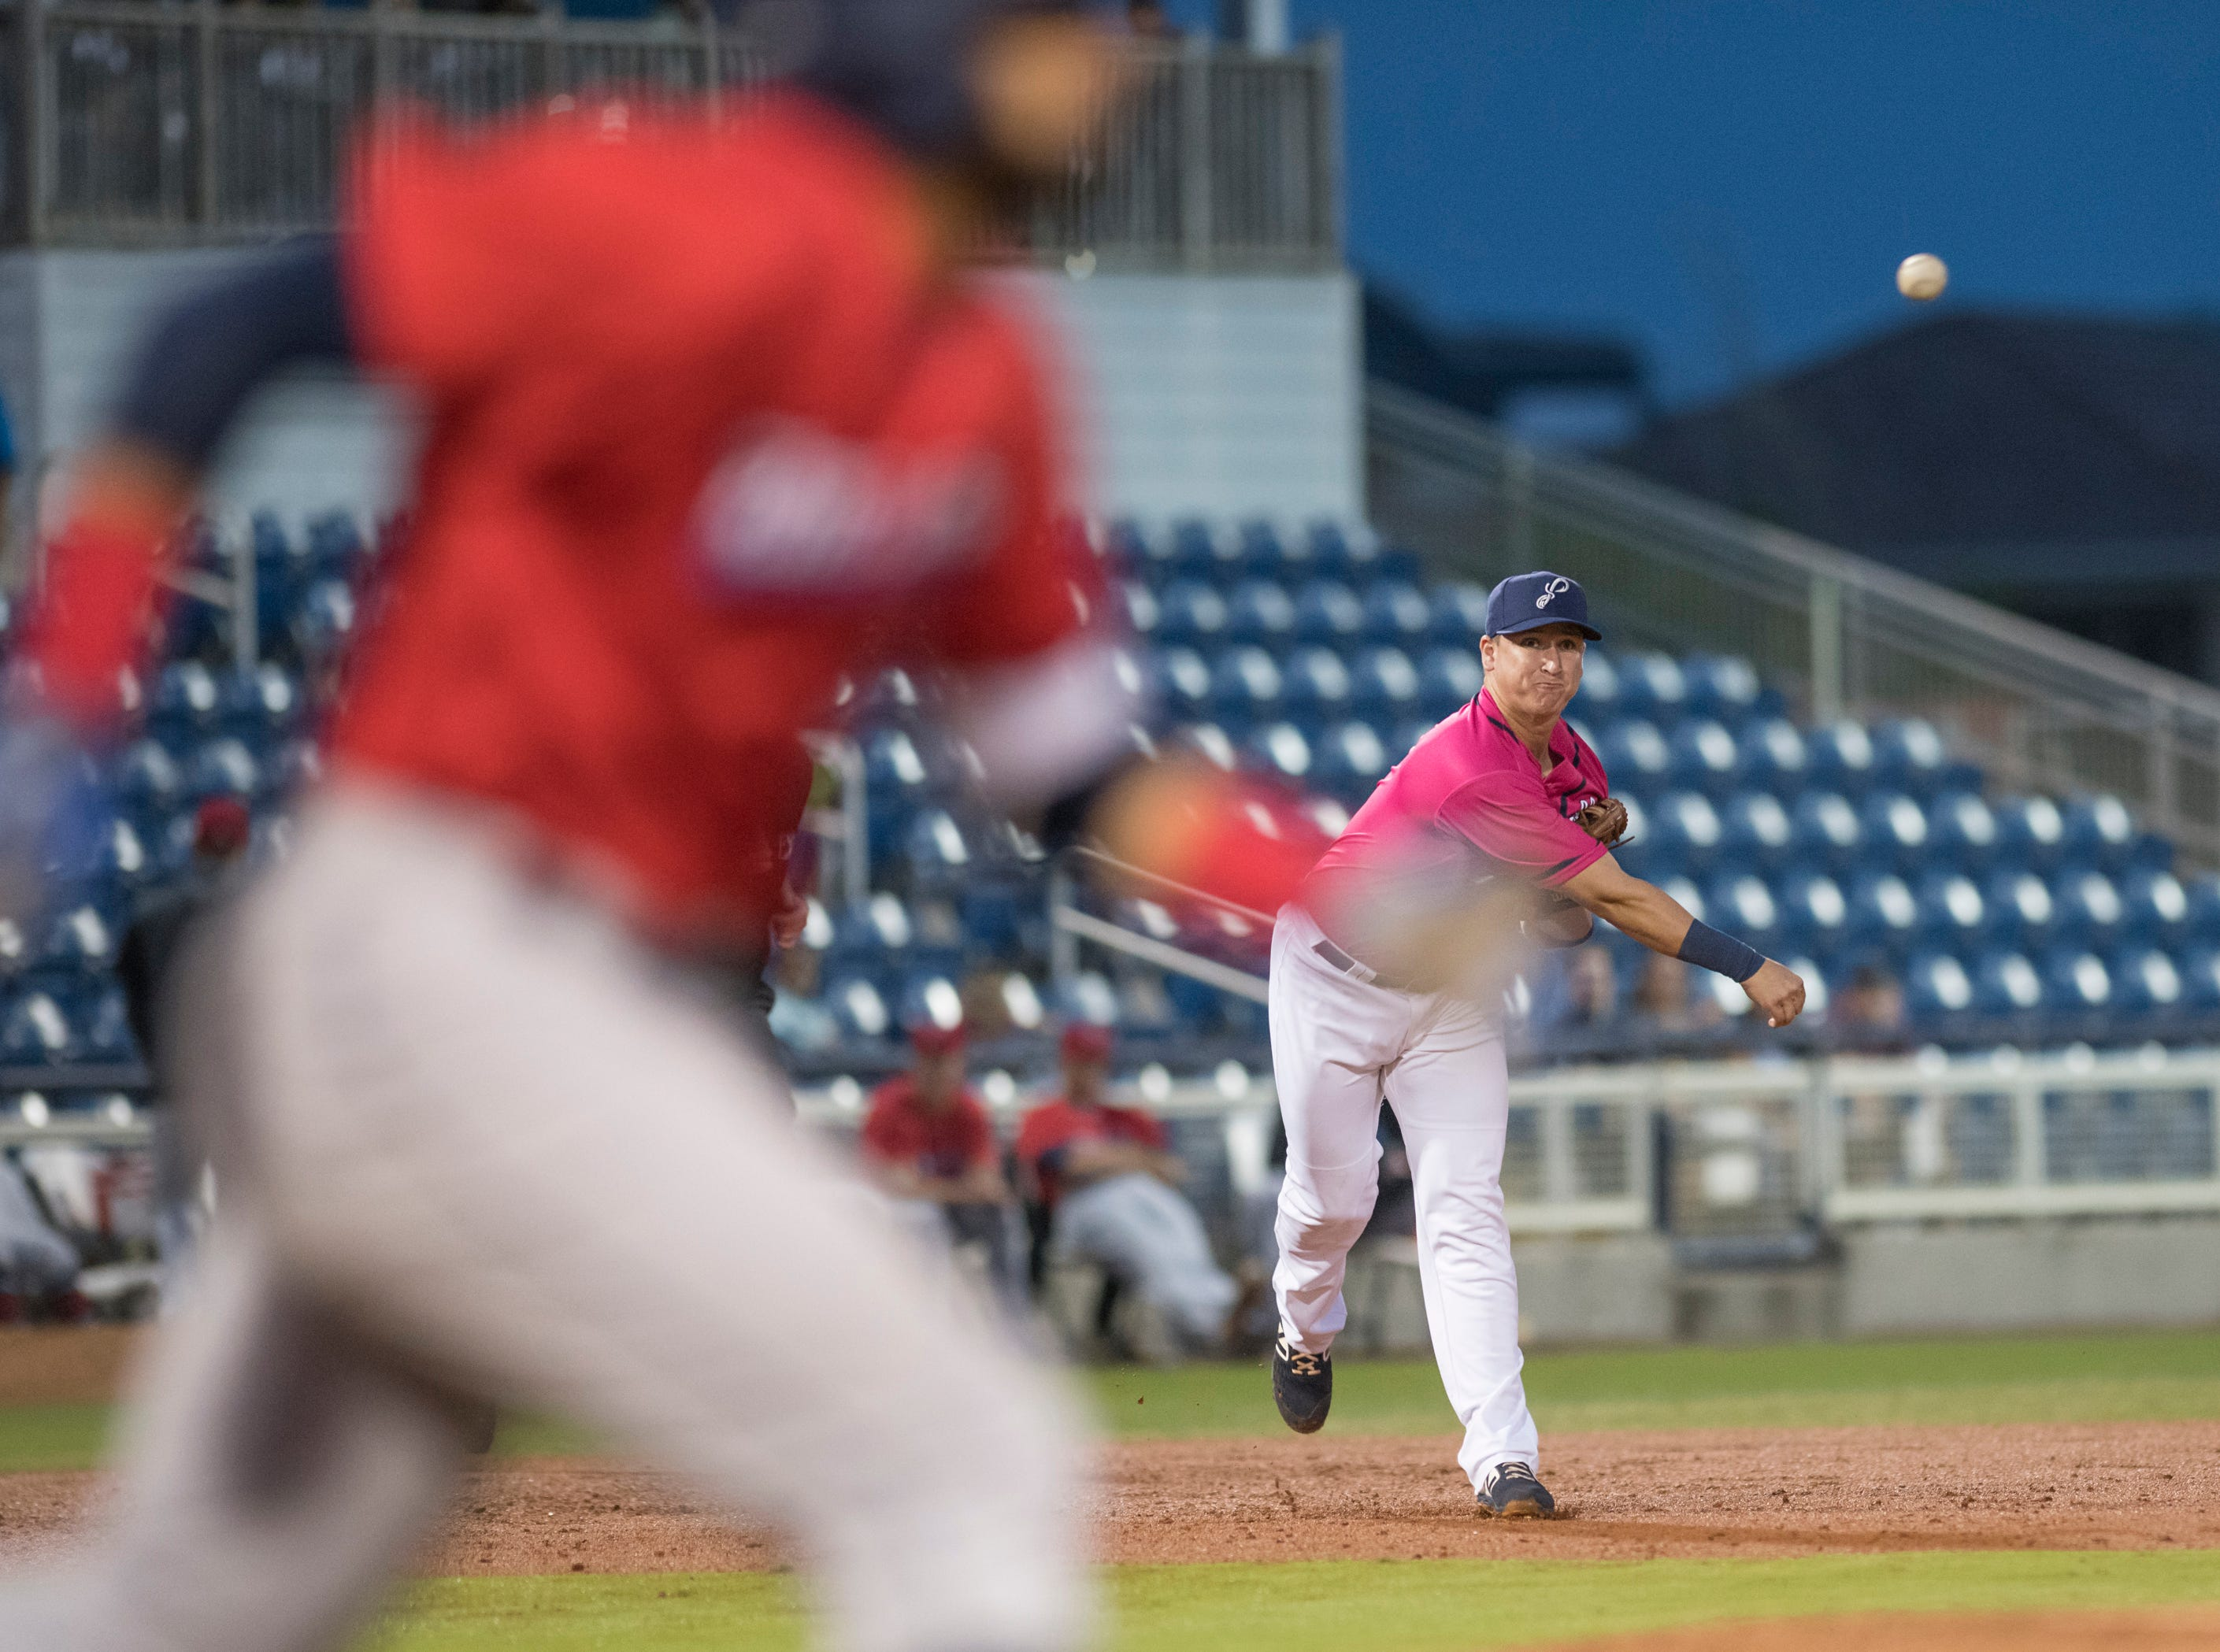 Third baseman Brian Schales (9) fires to first for an out during the Jacksonville Jumbo Shrimp vs Pensacola Blue Wahoos baseball game in Pensacola on Friday, April 12, 2019.